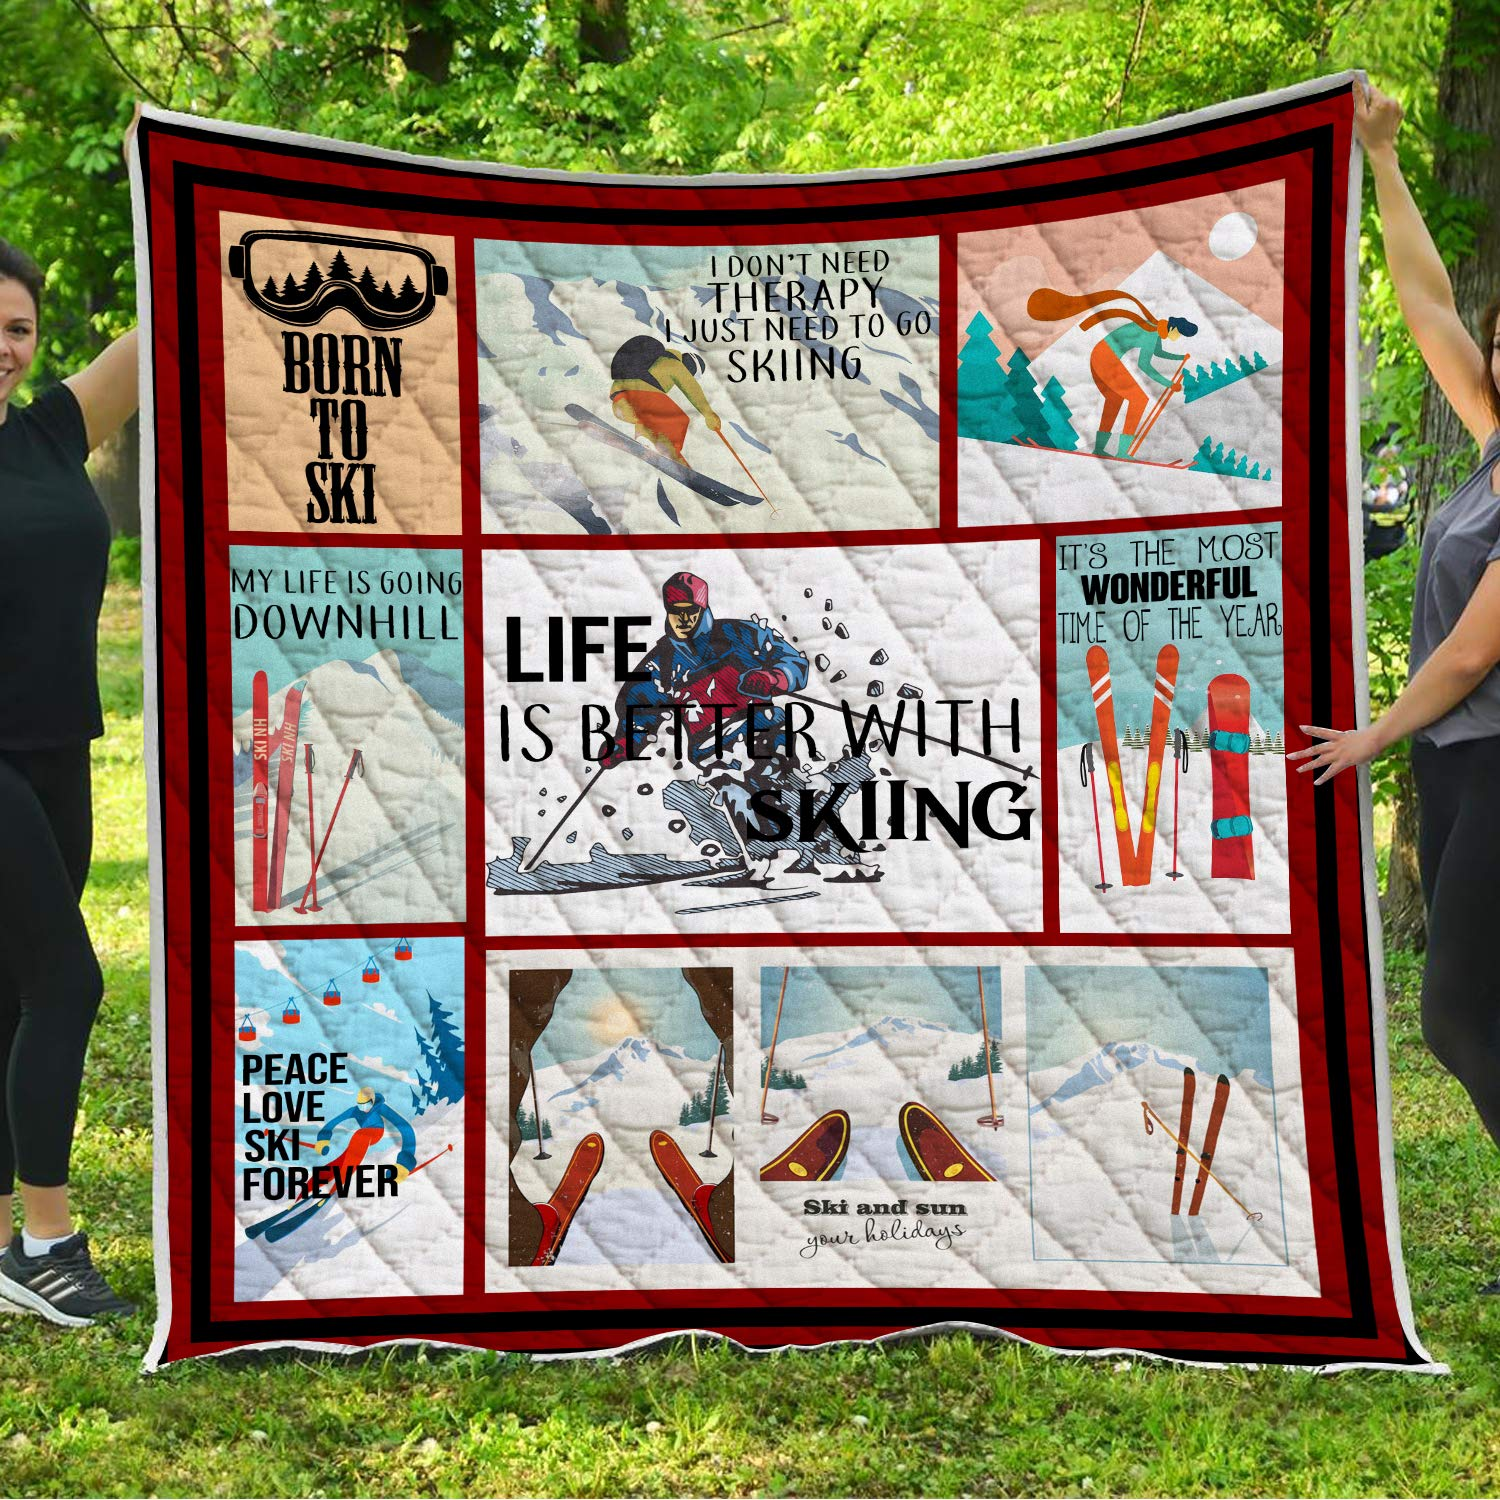 Skiing Quilt Pattern Blanket Comforters with Reversible Cotton King Queen Full Twin Size Quilted Birthday Ski Gifts for Skiers Men Women Dad Mom Kids Children Husband Wife Boyfriend Girlfriend Girls by VTH Global